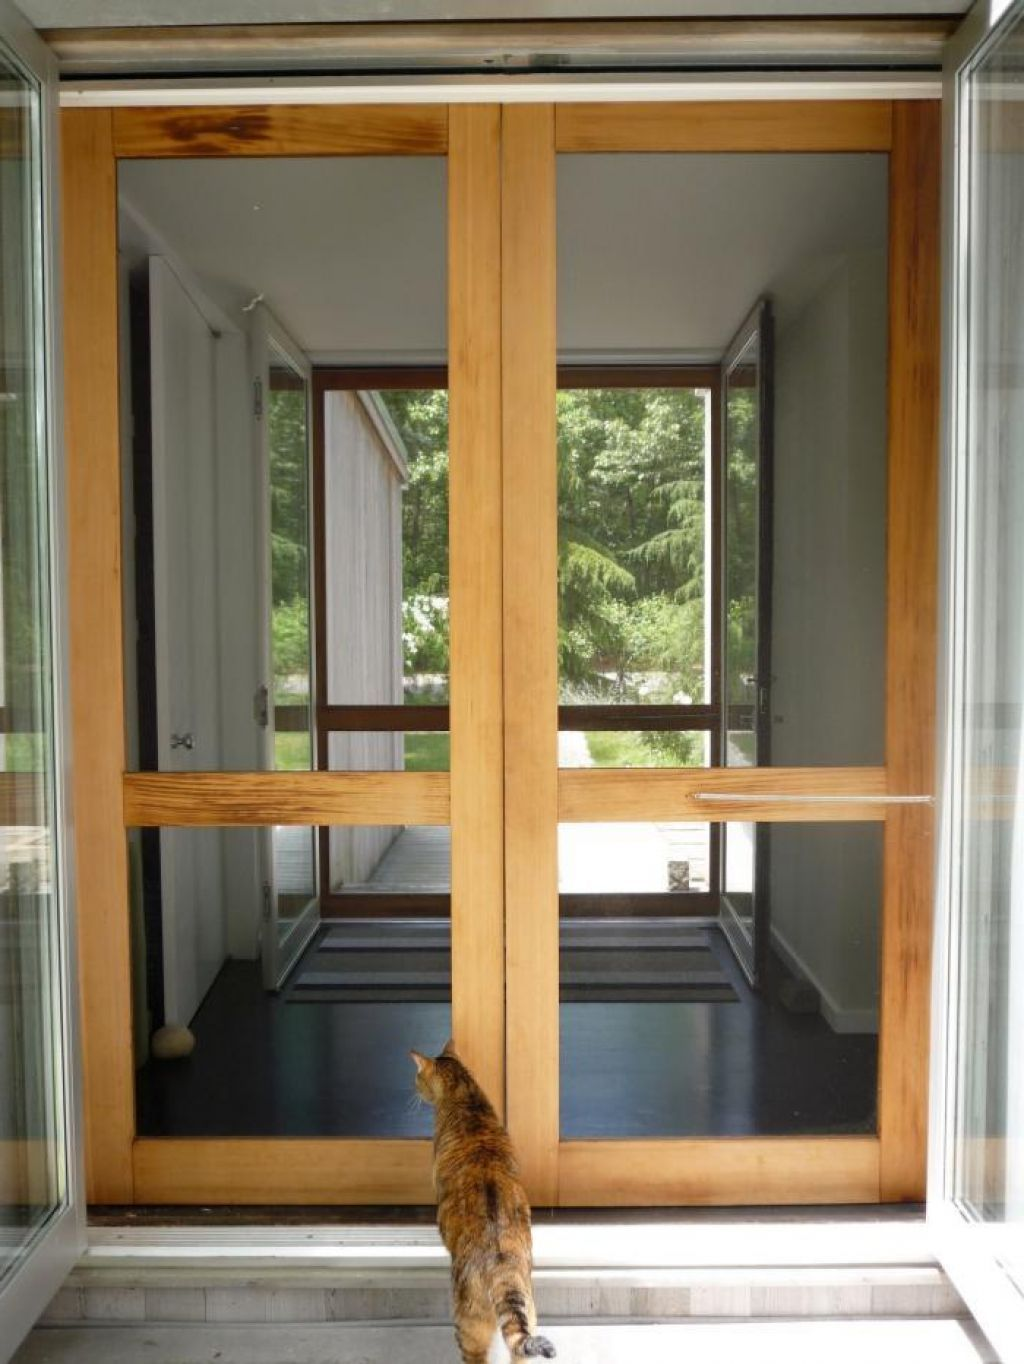 Simple Home Depot Screen Doors With Teak Wood Material For The ...